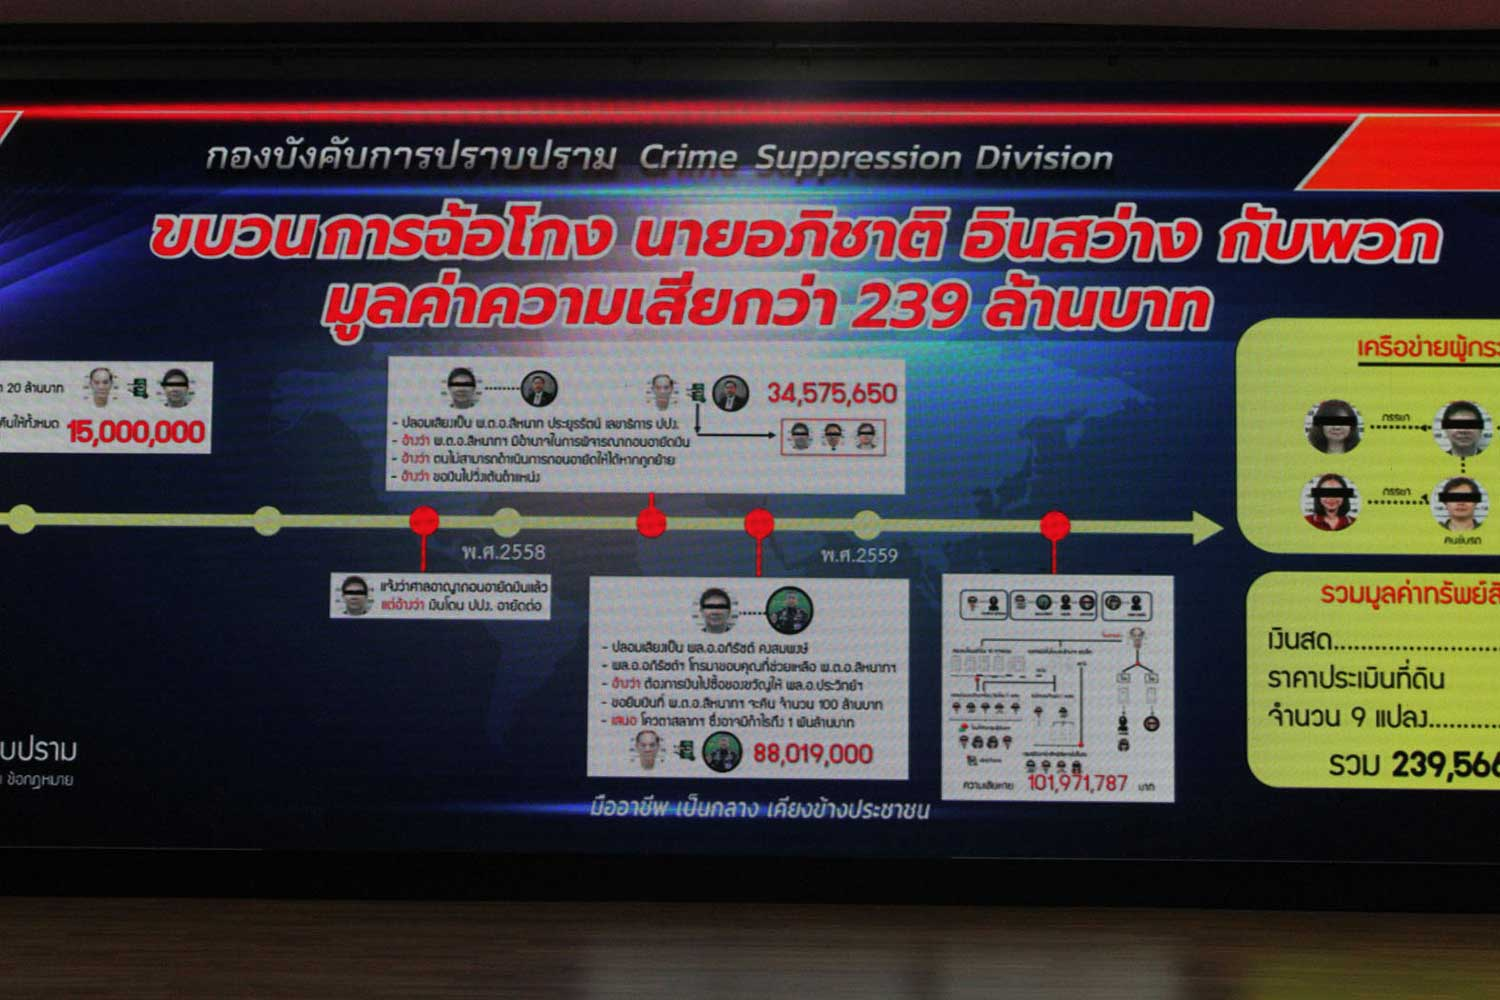 A chart prepared by the Crime Suppression Division details the activities of the gang accused of swindling a 79-year-old man out of 239 million baht. (Supplied photo)